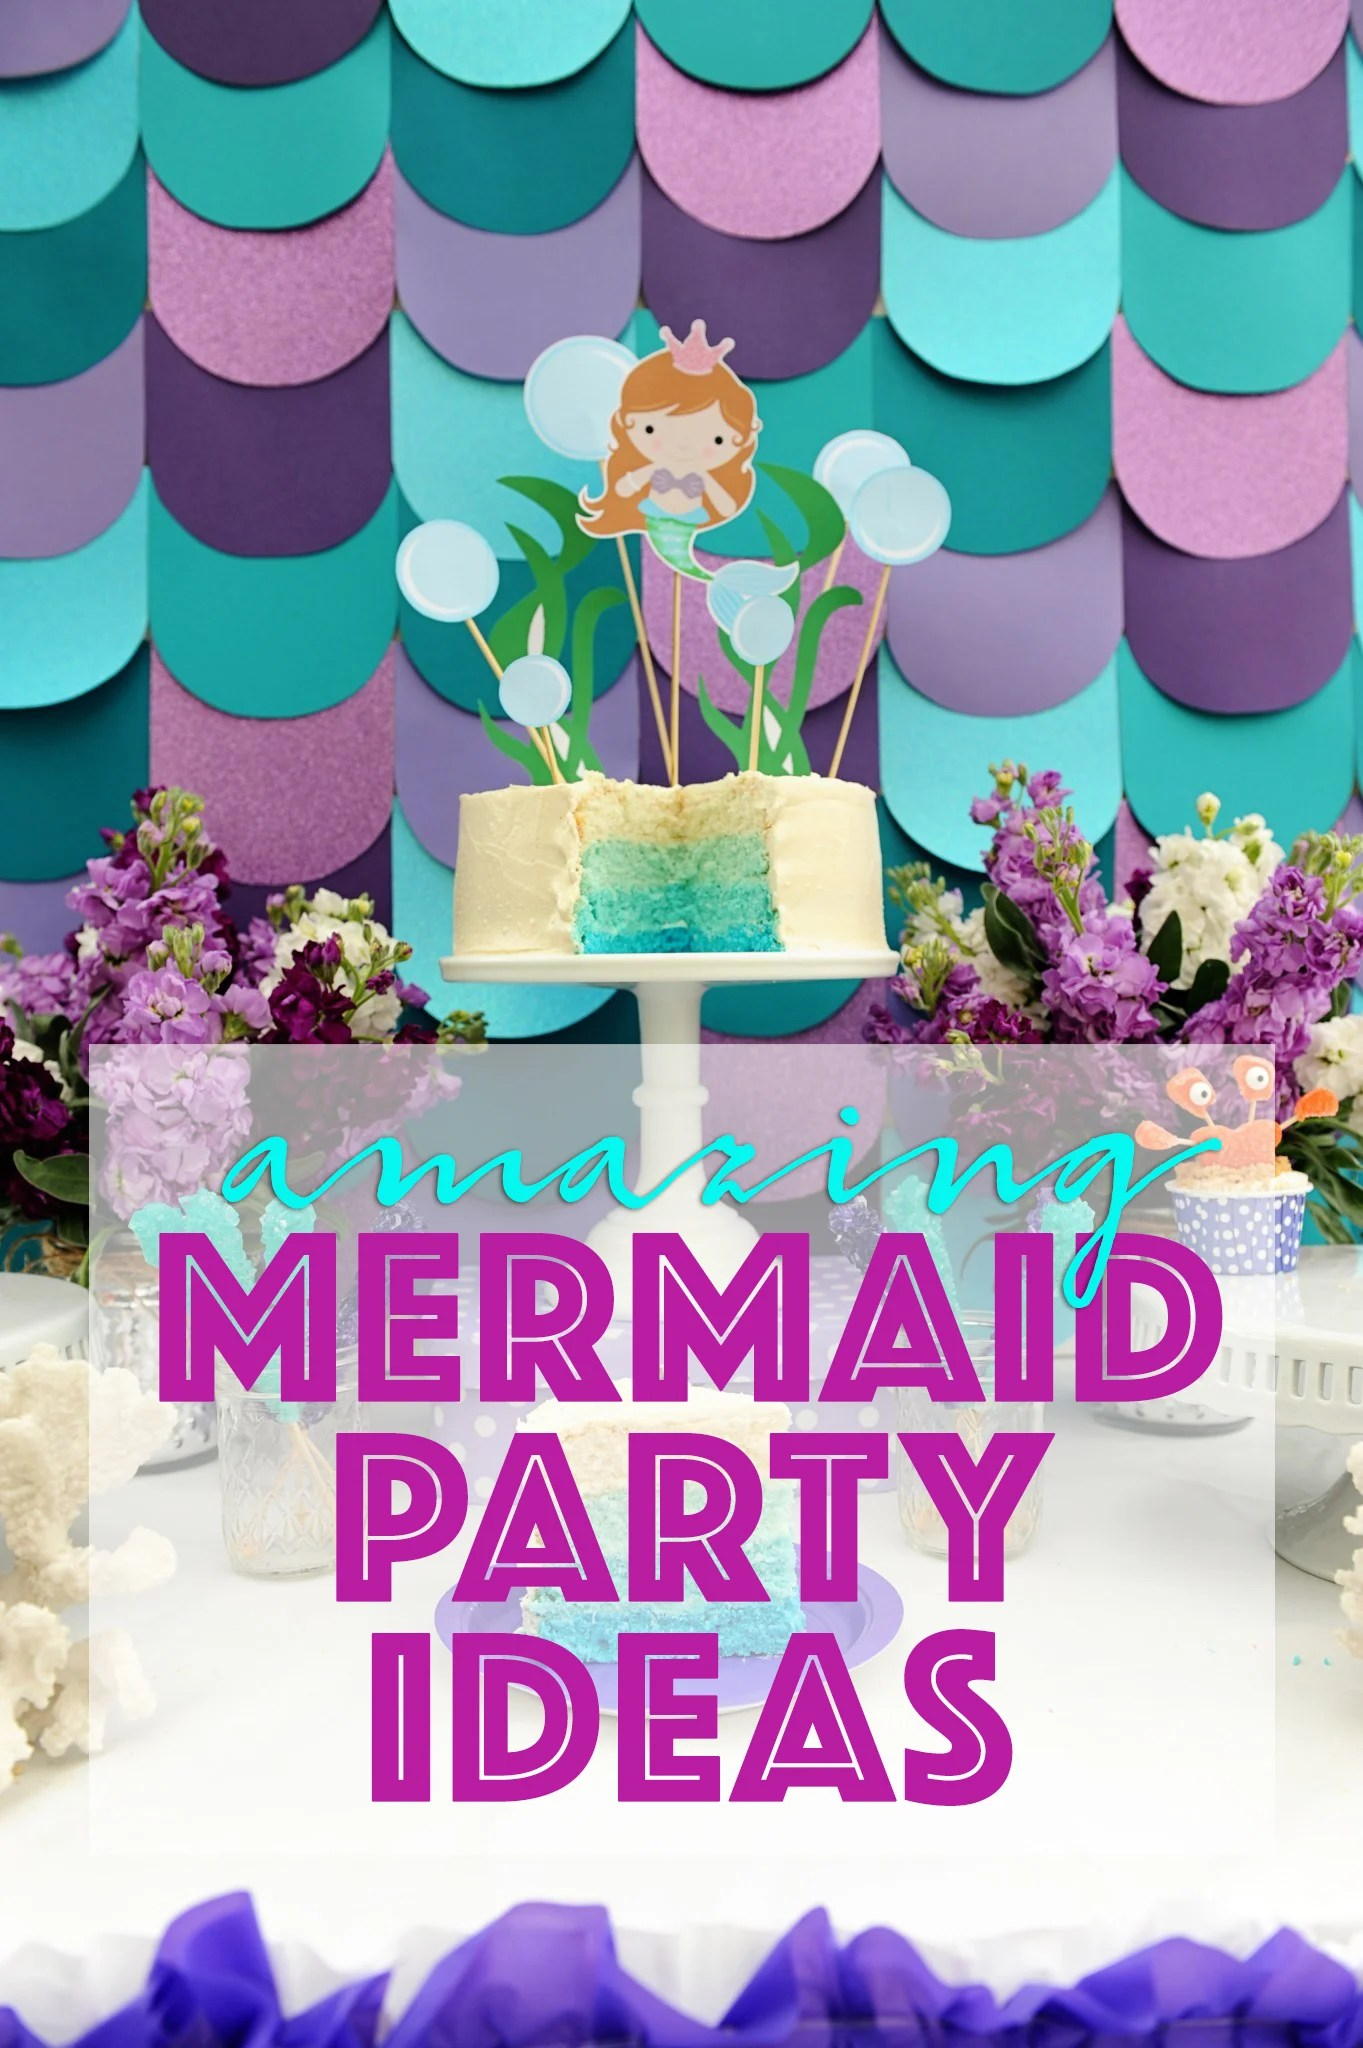 Mermaid party ideas